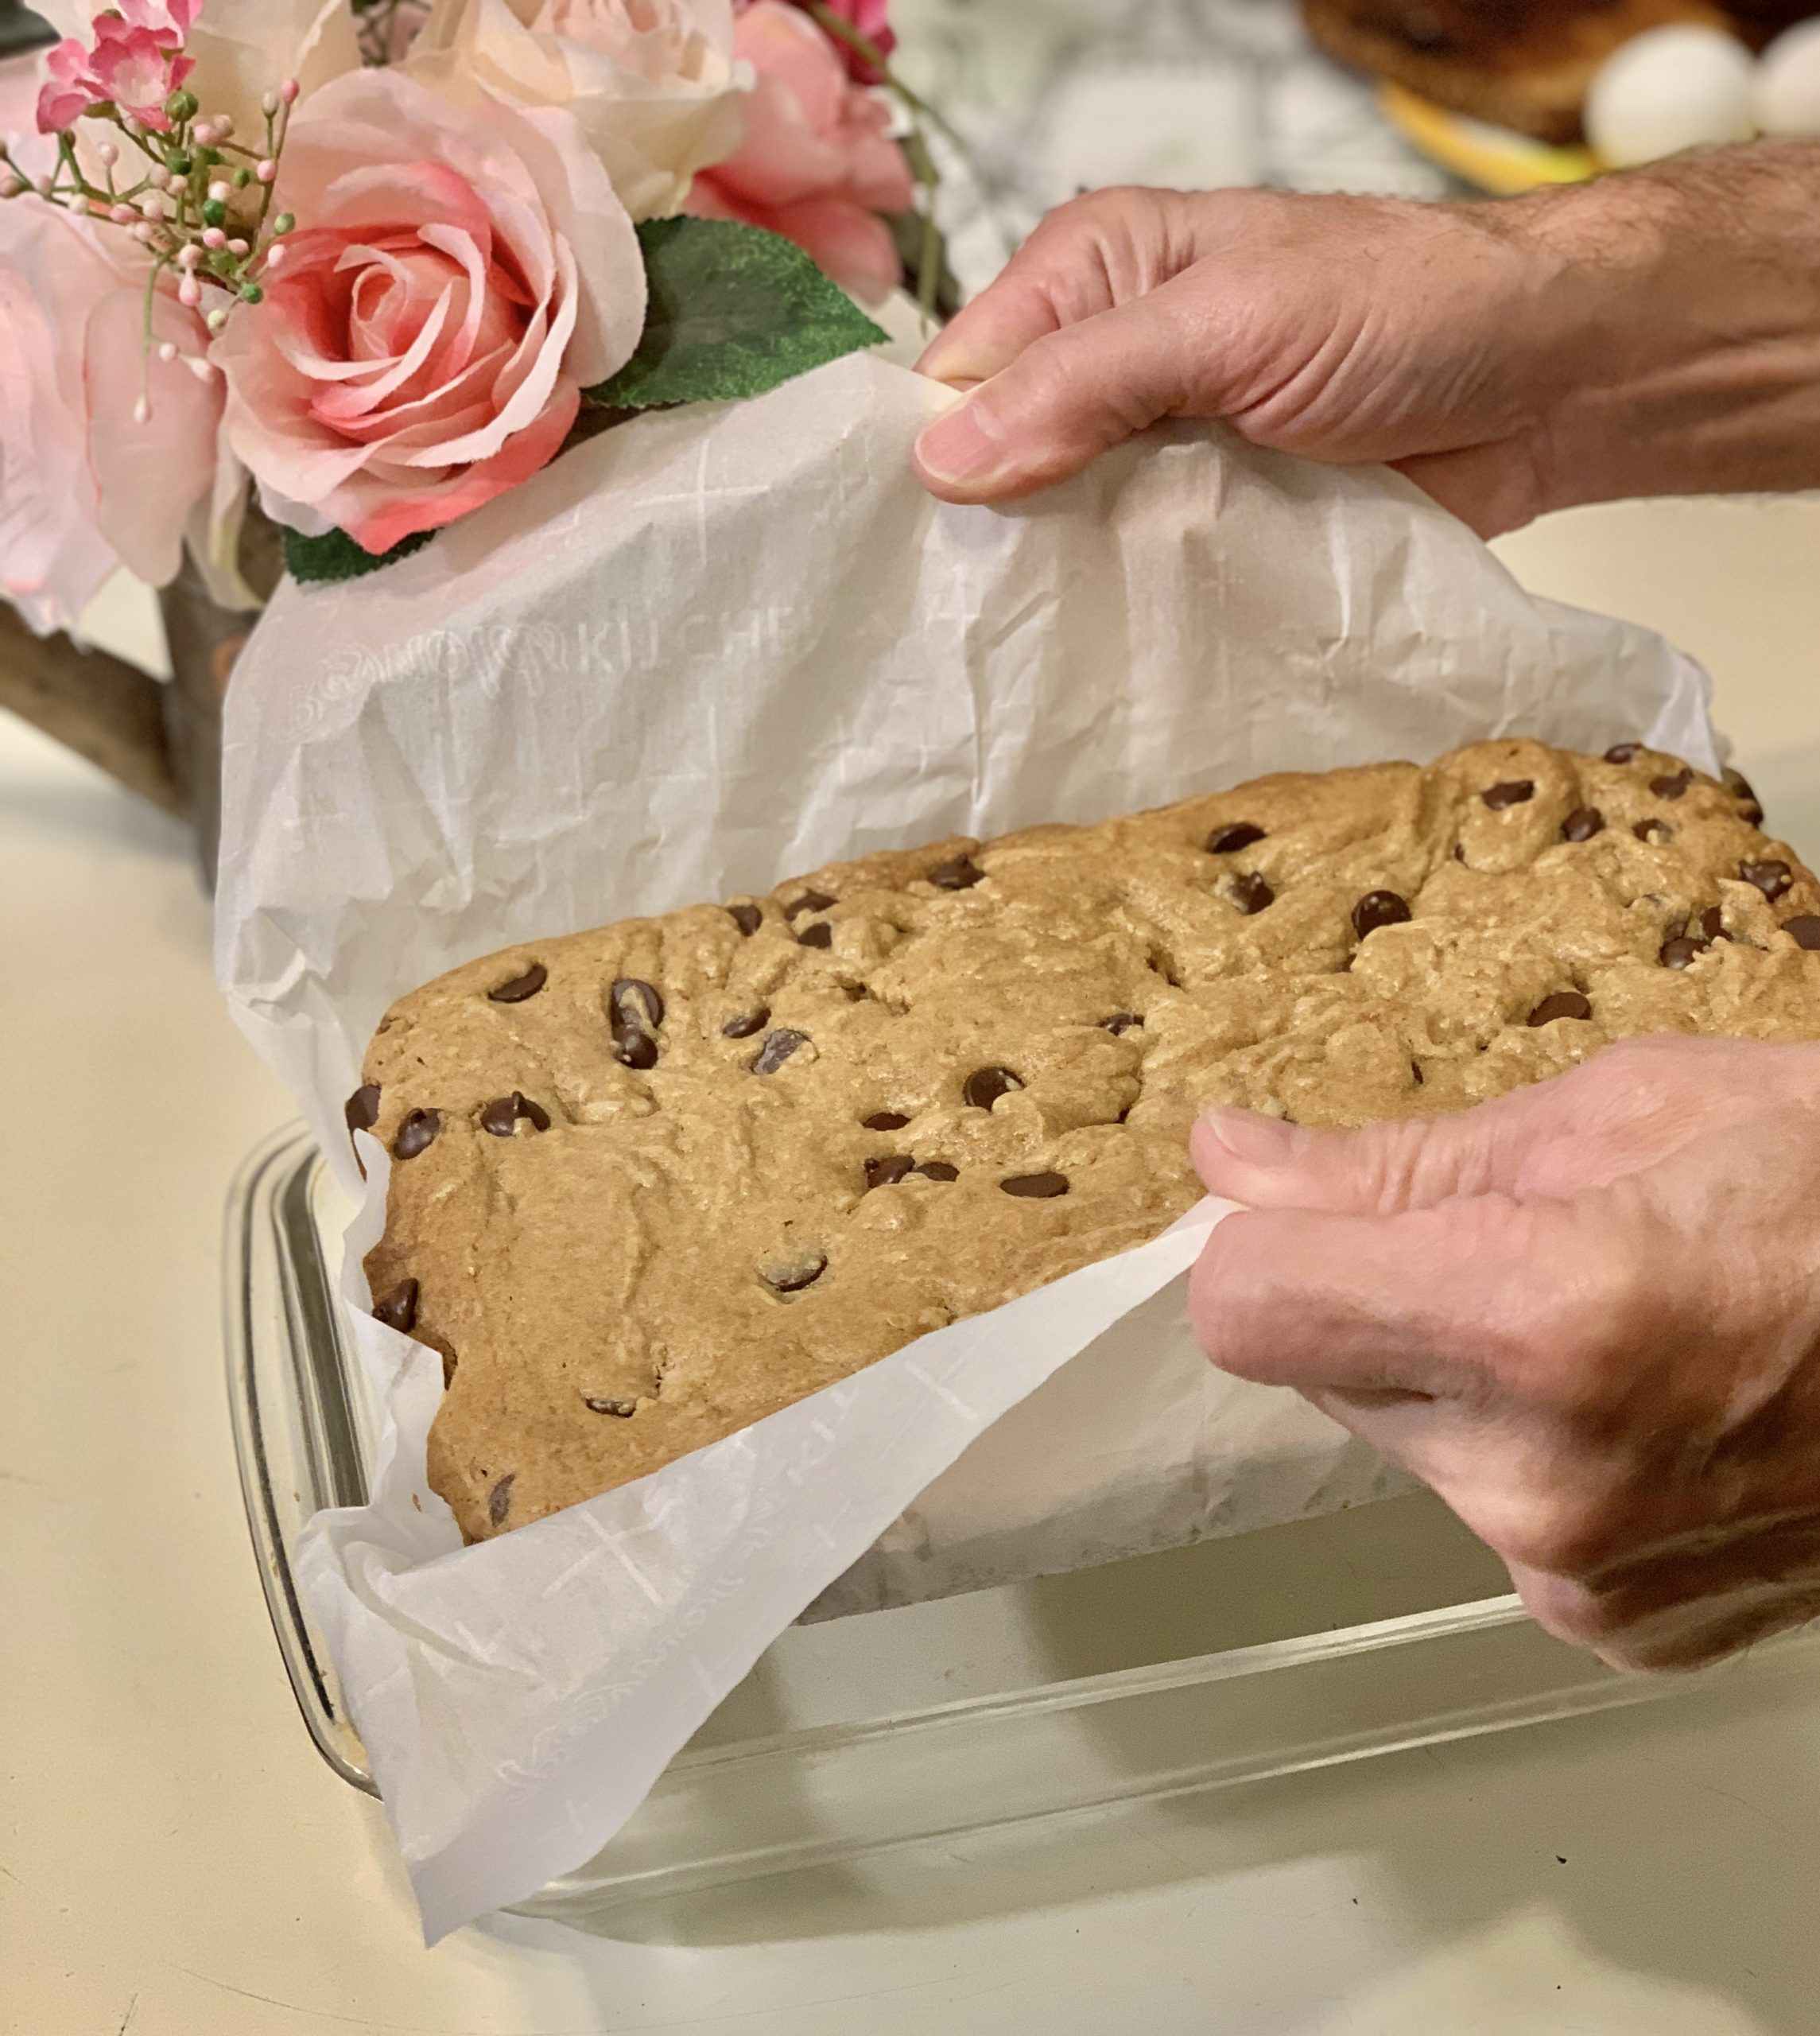 The Art of Seduction with Chocolate Chip Blondies